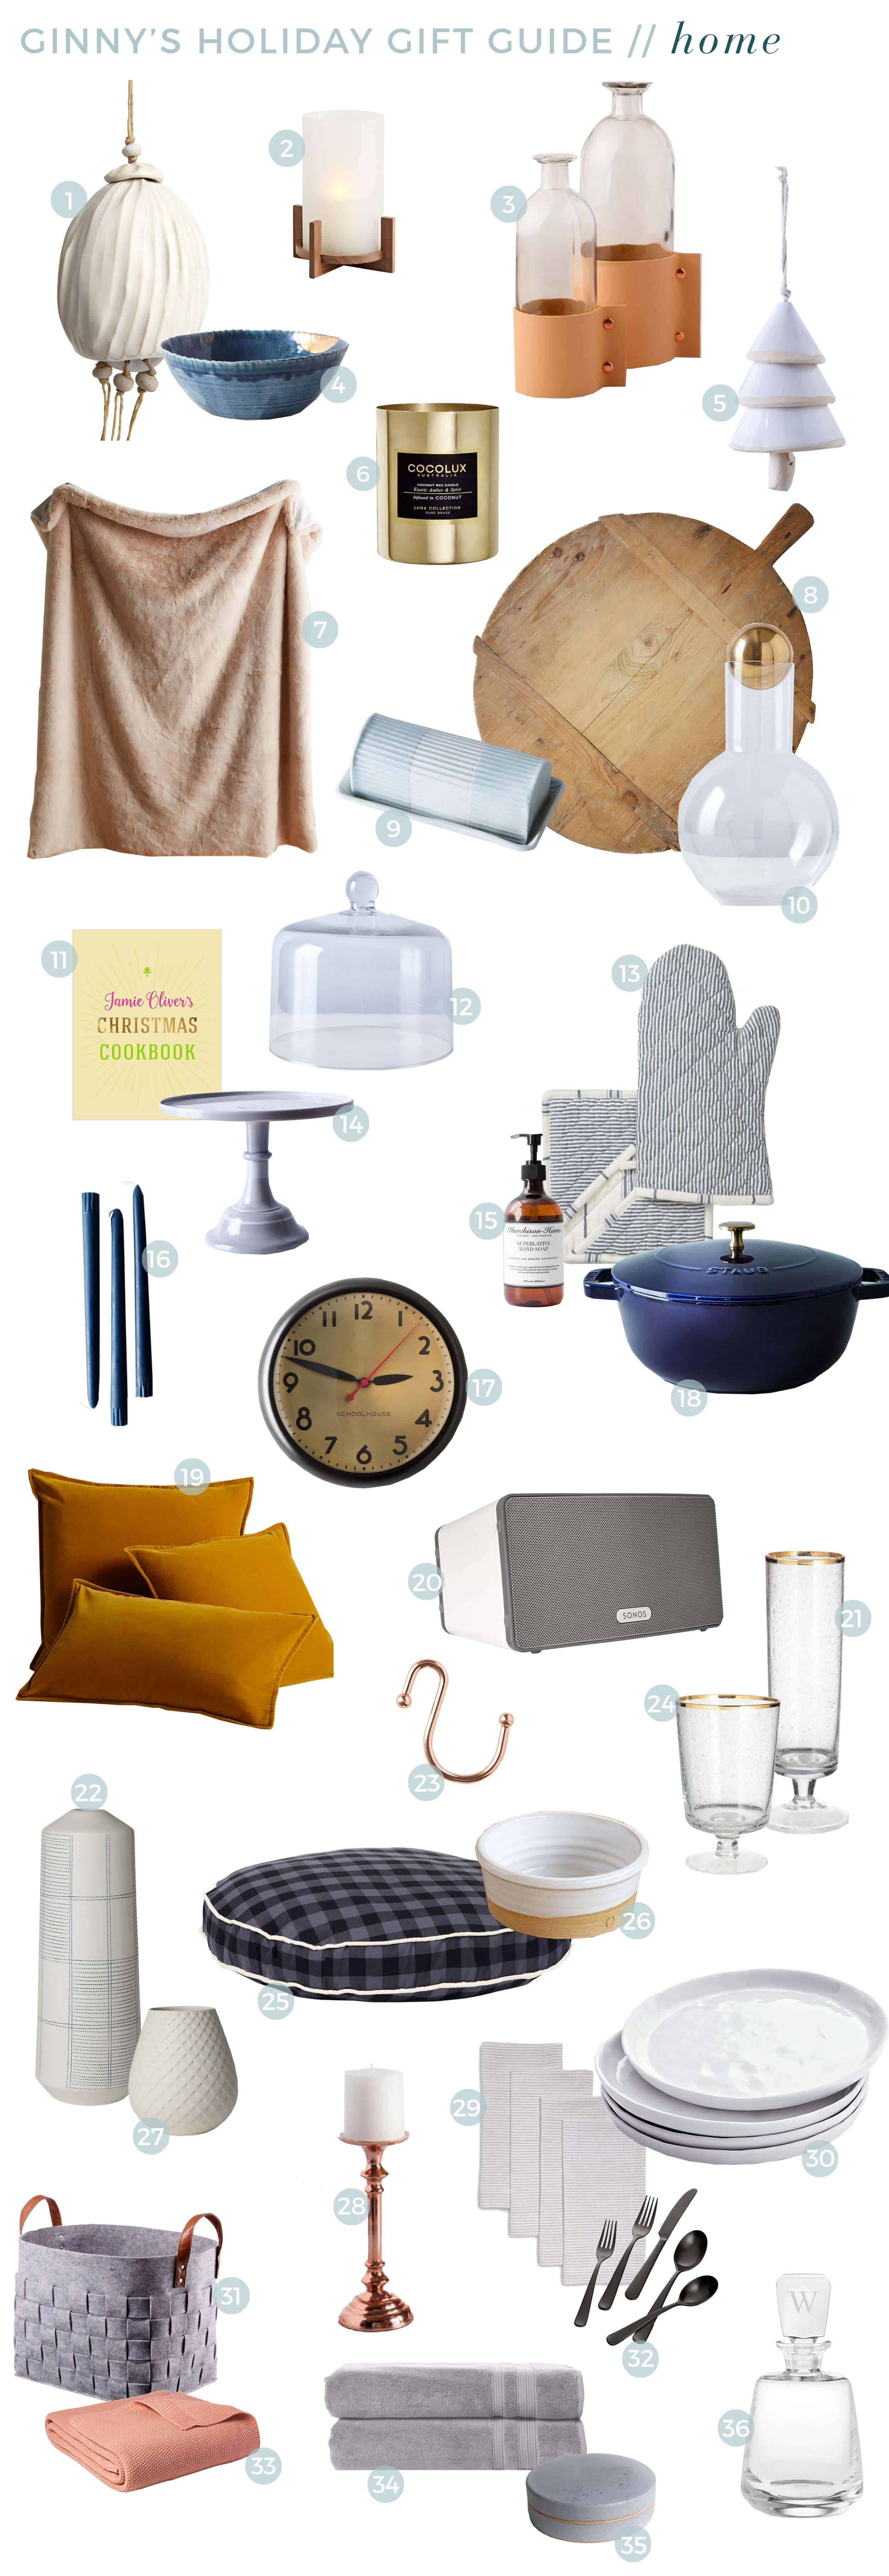 emily-henderson_holiday_gift-guide_ginnny_2016_home_roundup